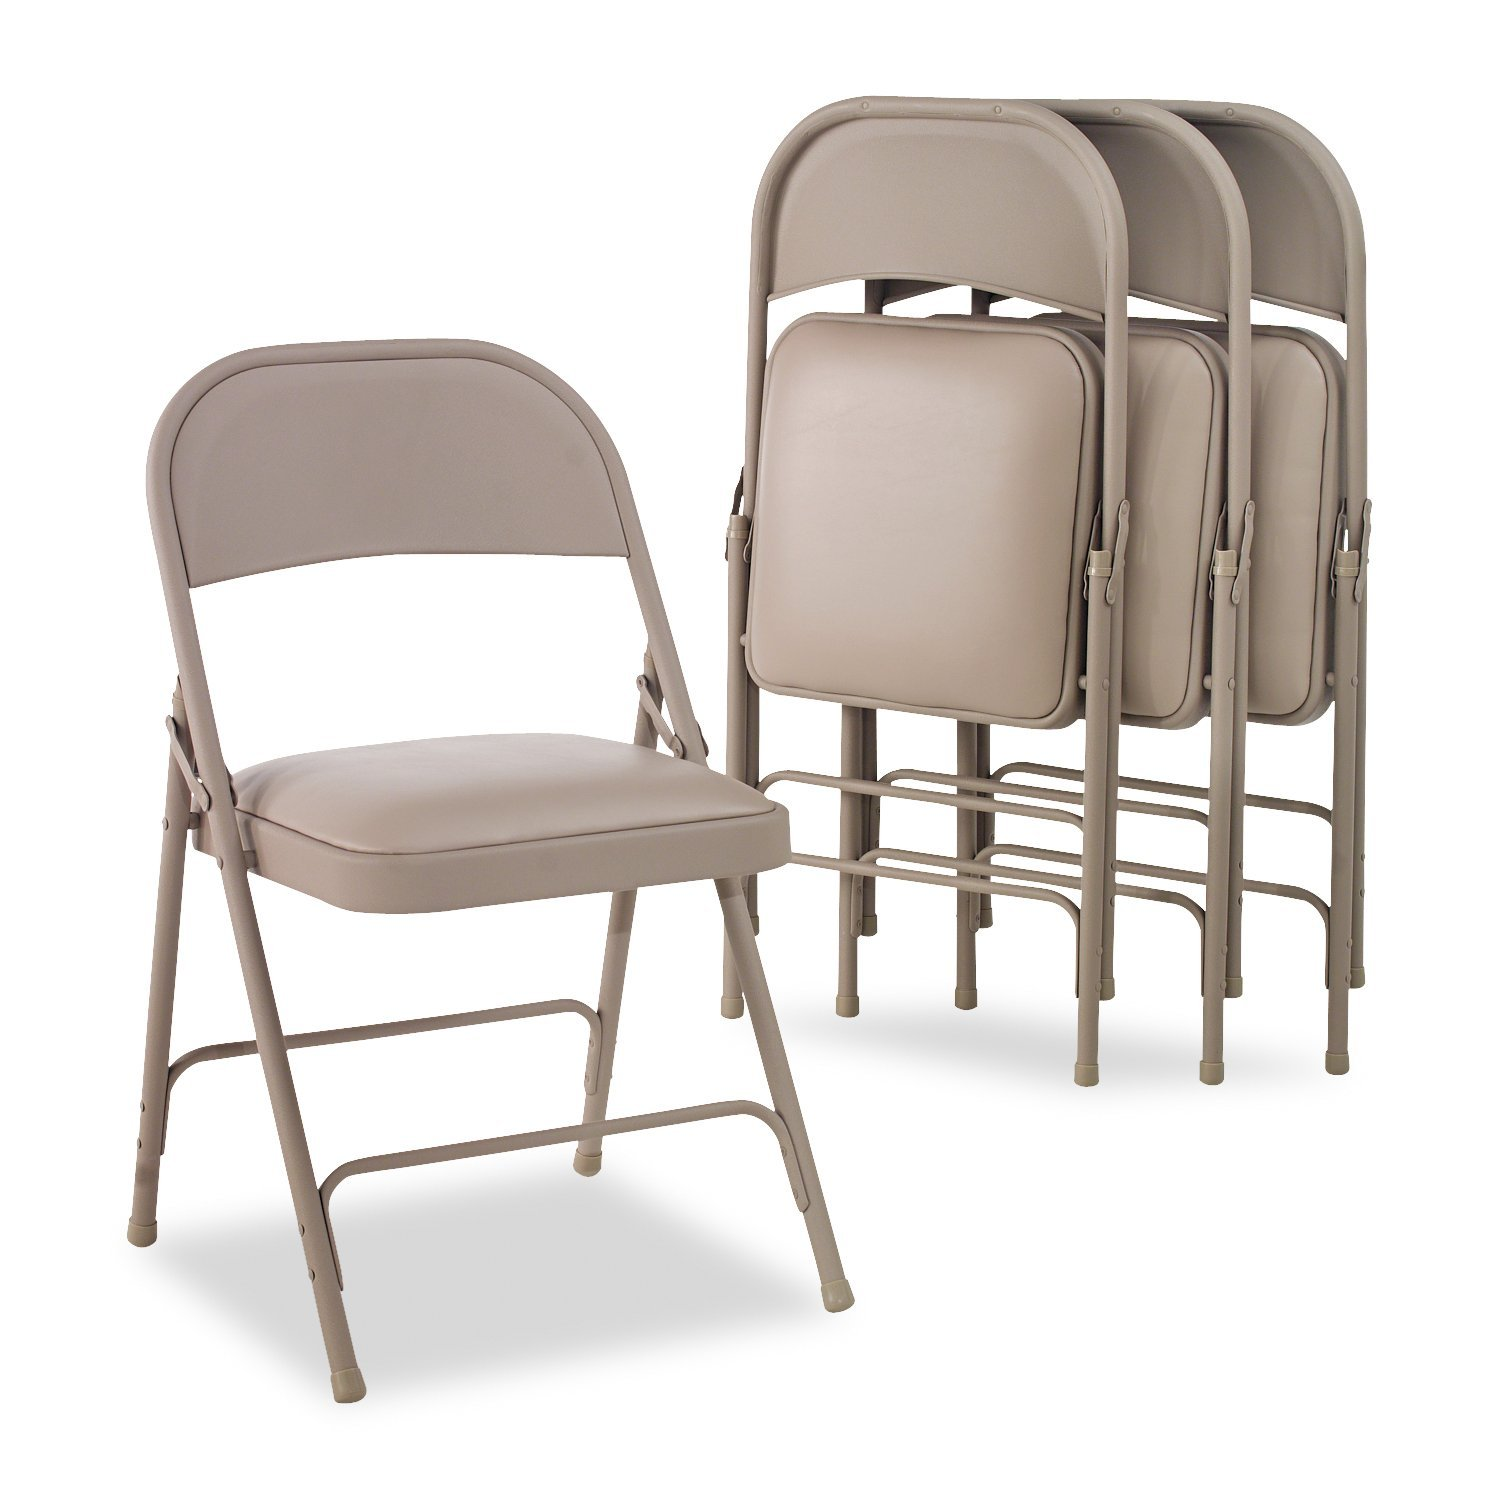 Amazon Alera Steel Folding Chair with Padded Seat Tan 4